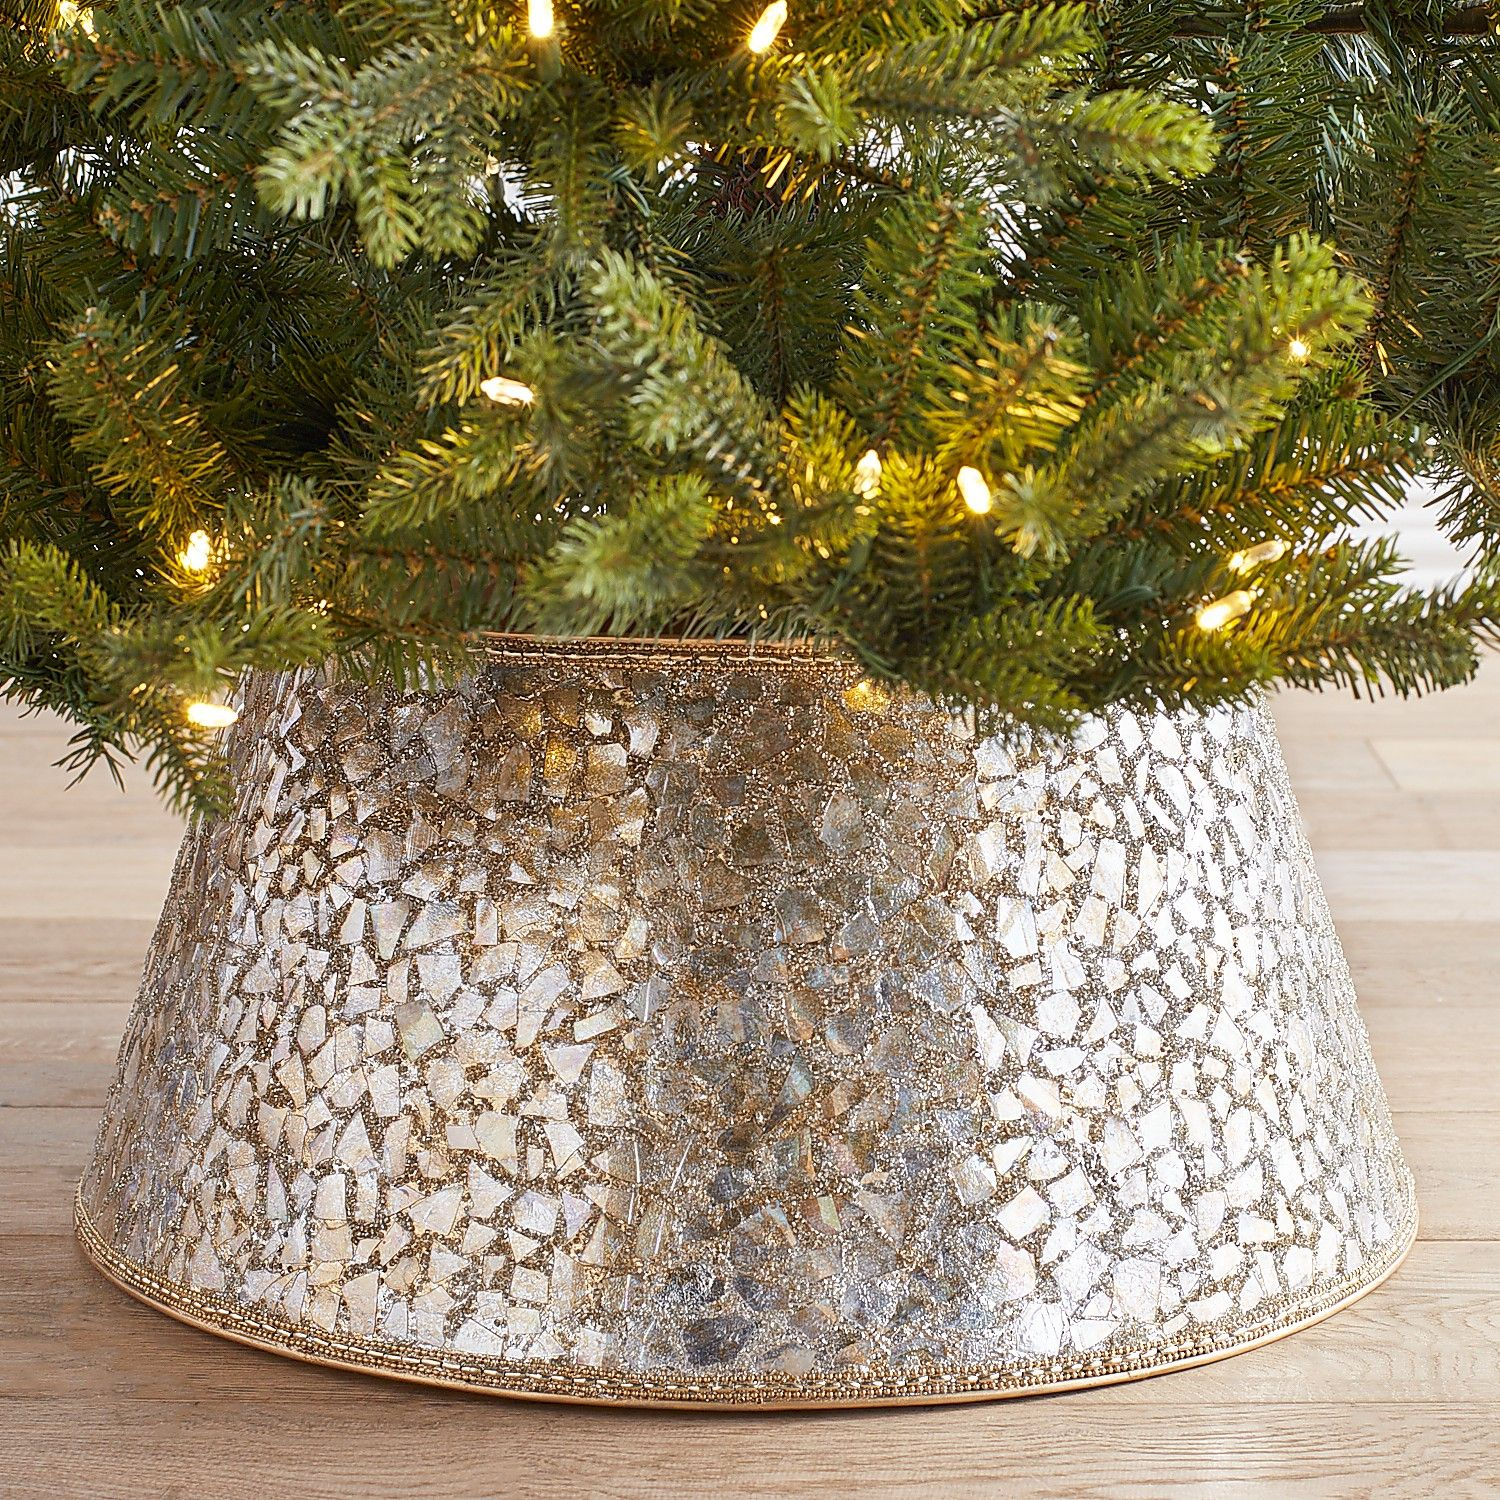 Ditch The Tree Skirt And Get A Tree Collar This Year